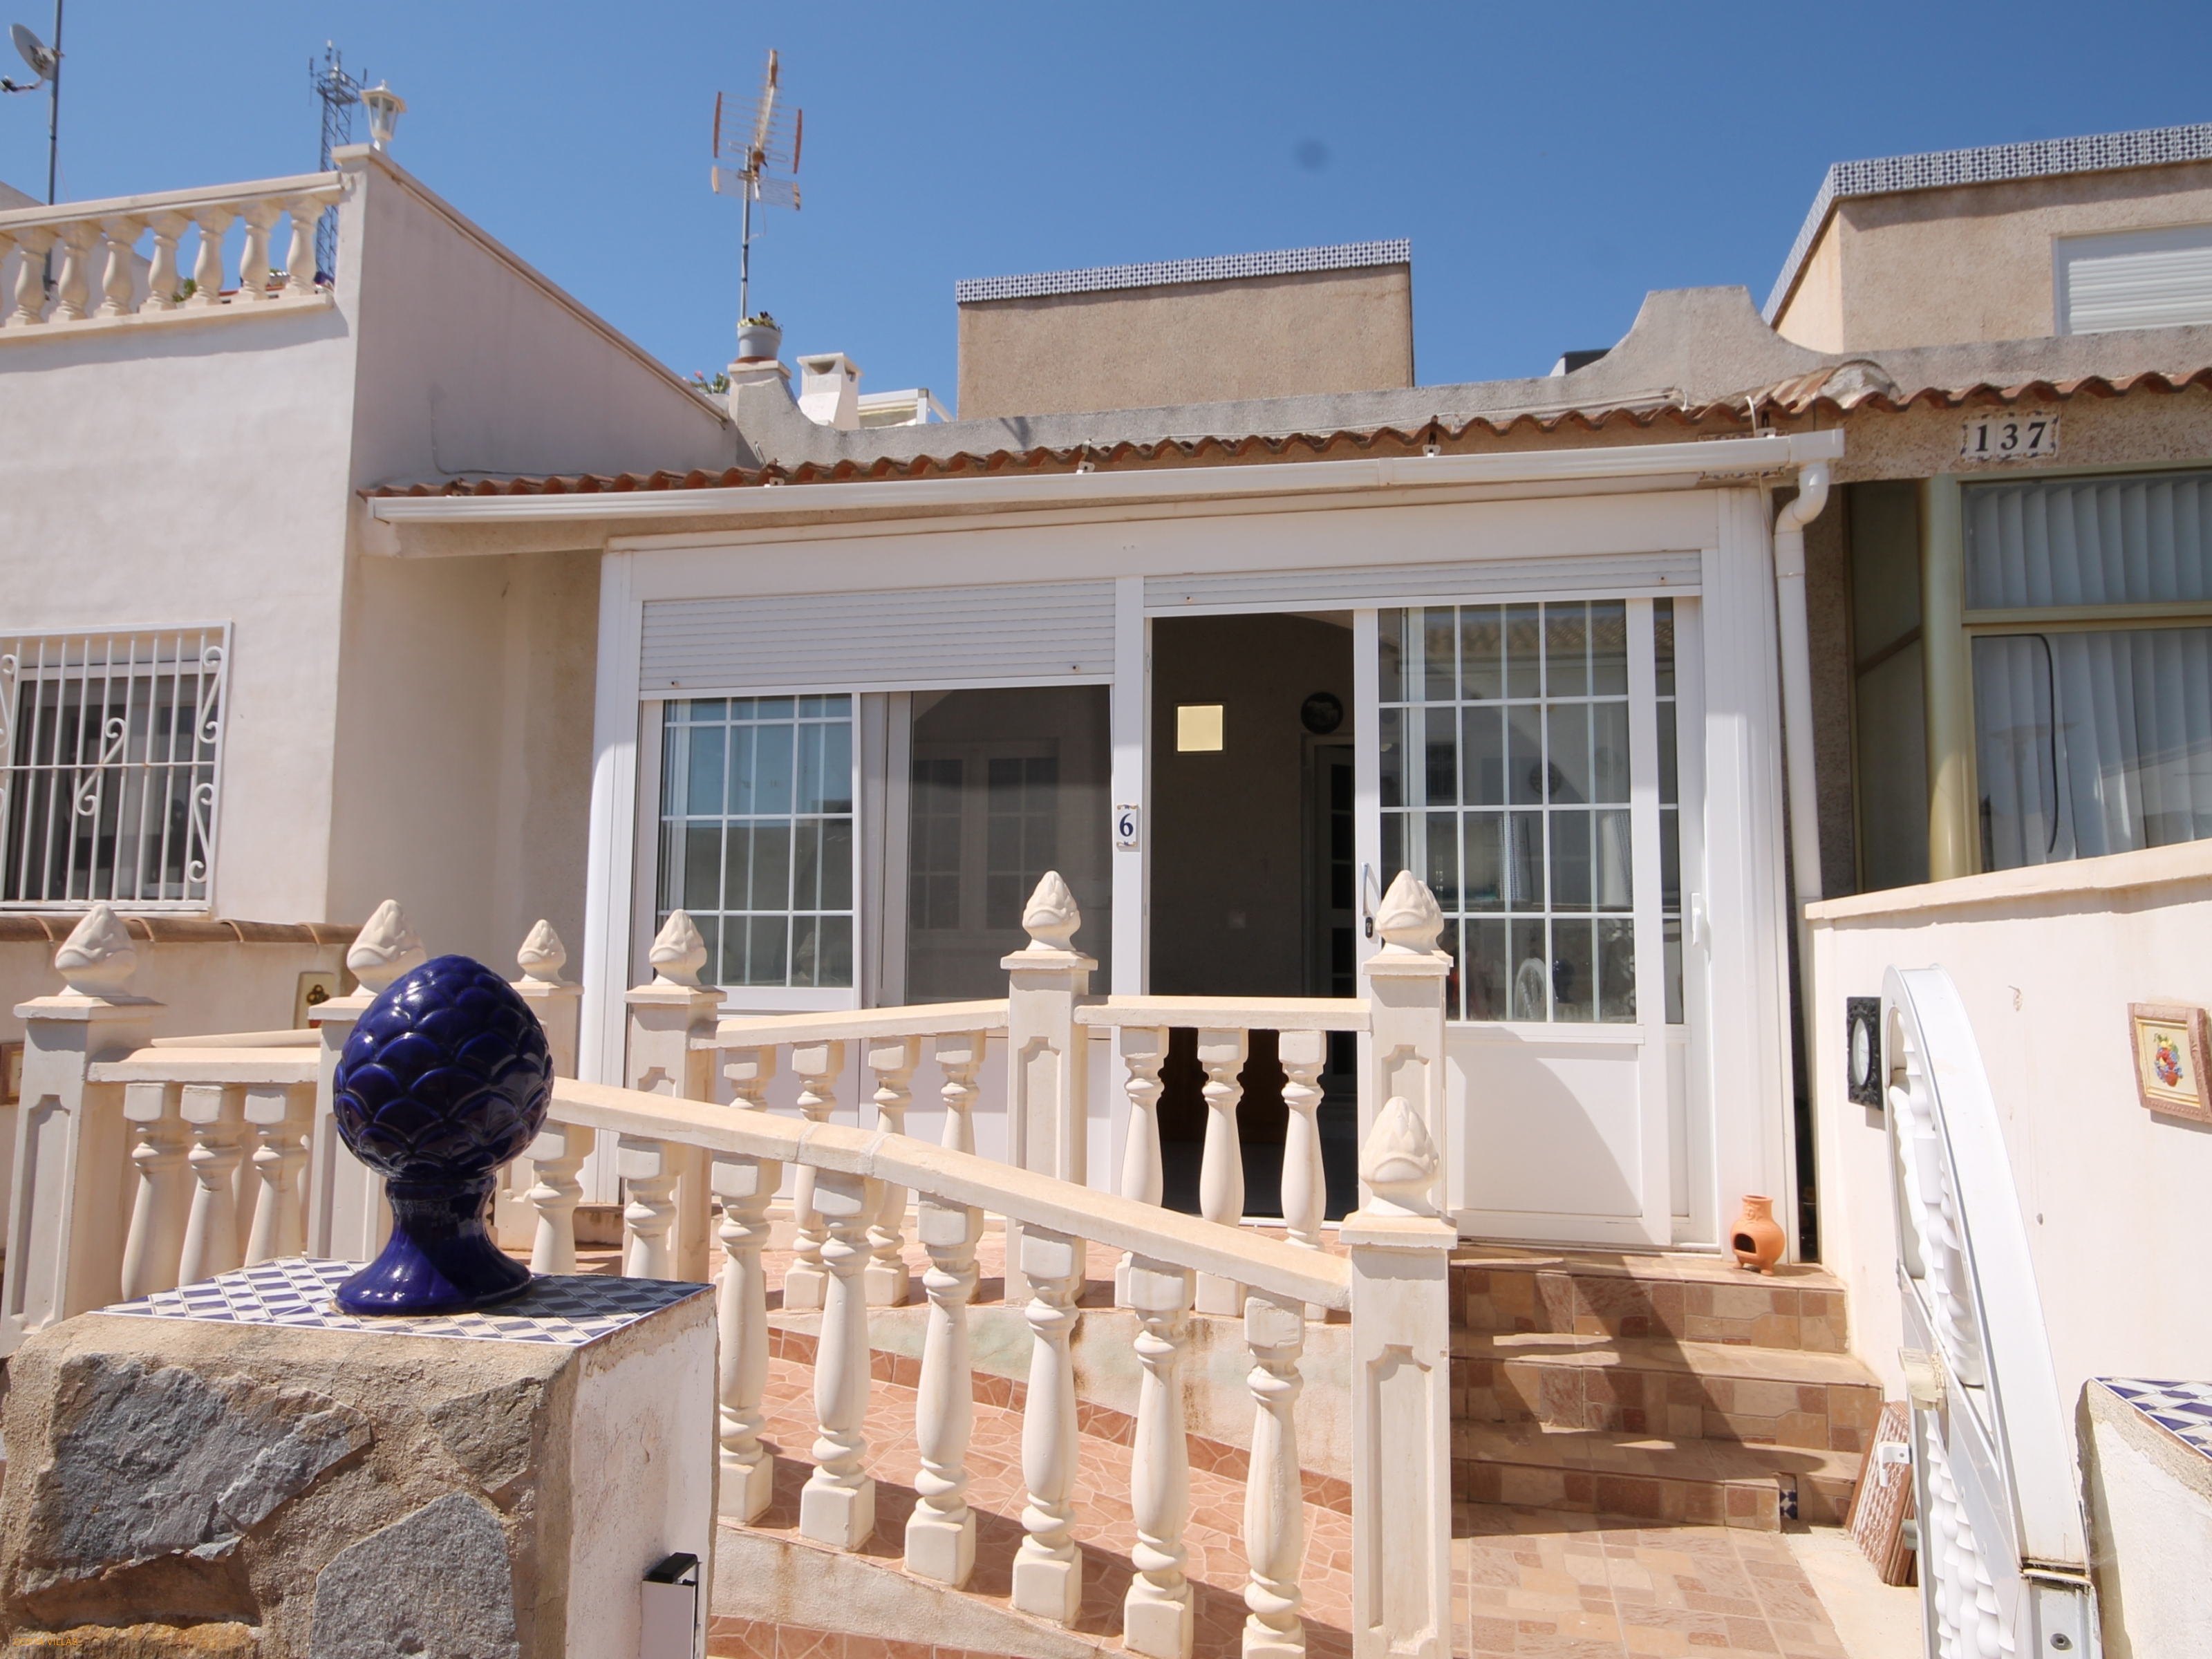 2 Bed terrace house with views